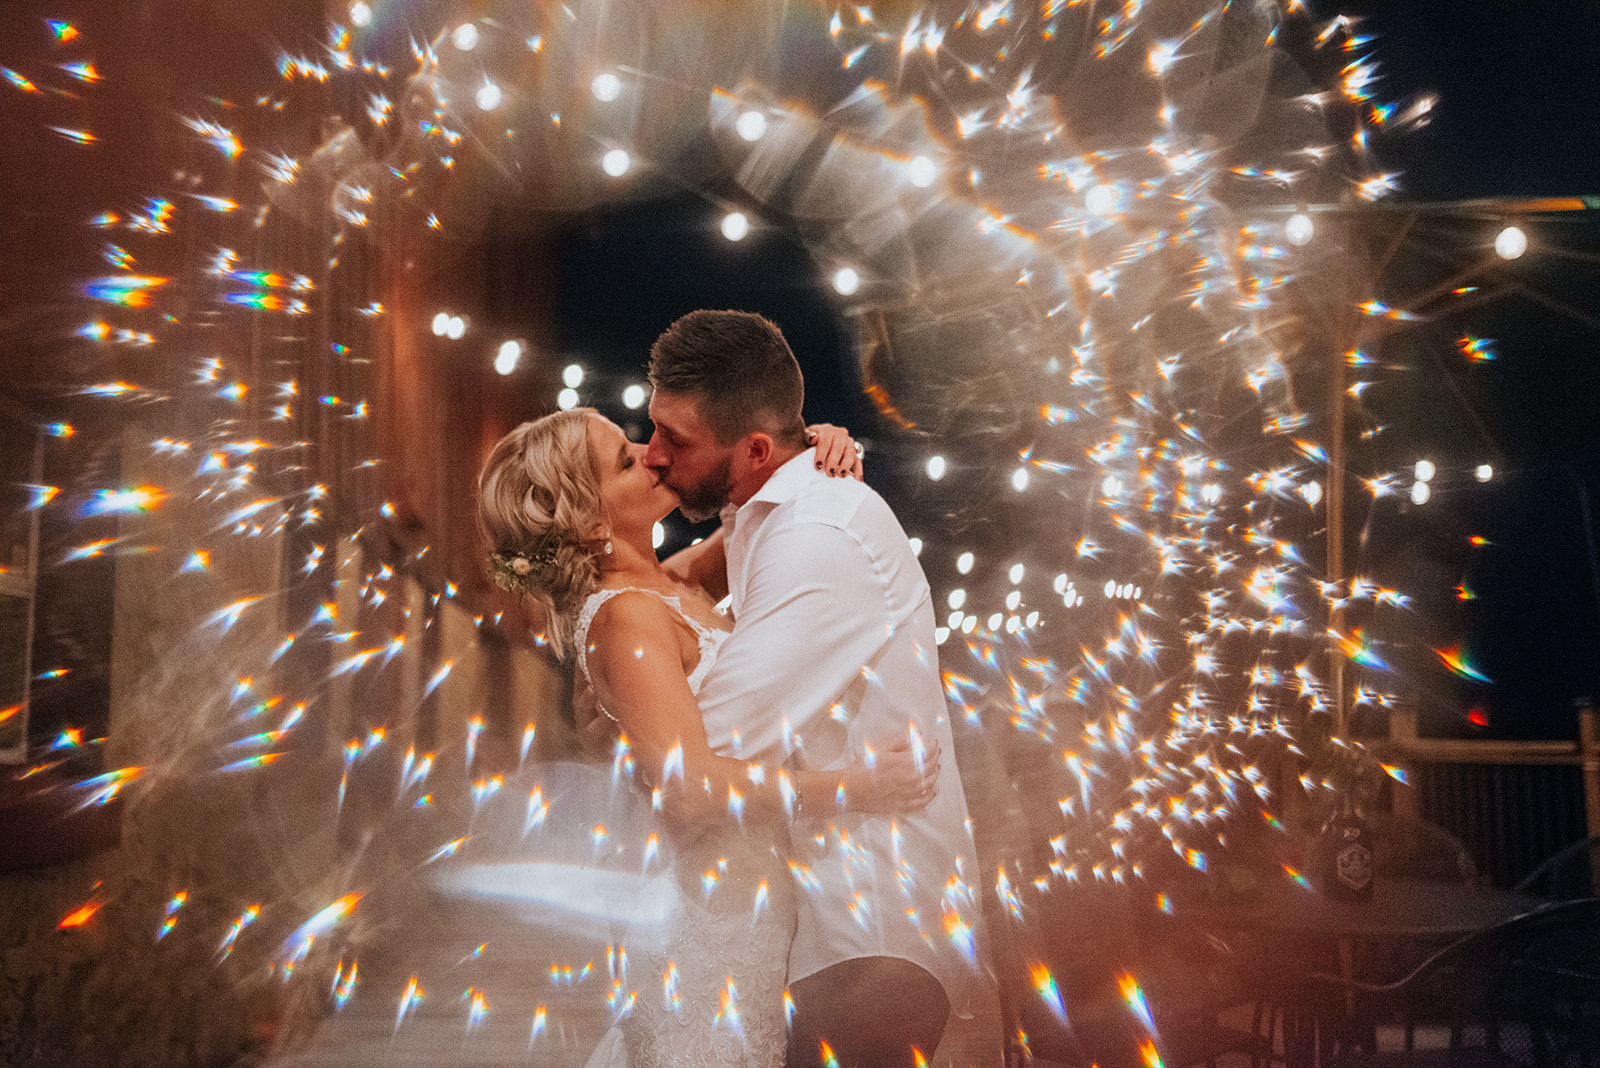 overthevineswisconsinwedding_1685.jpg